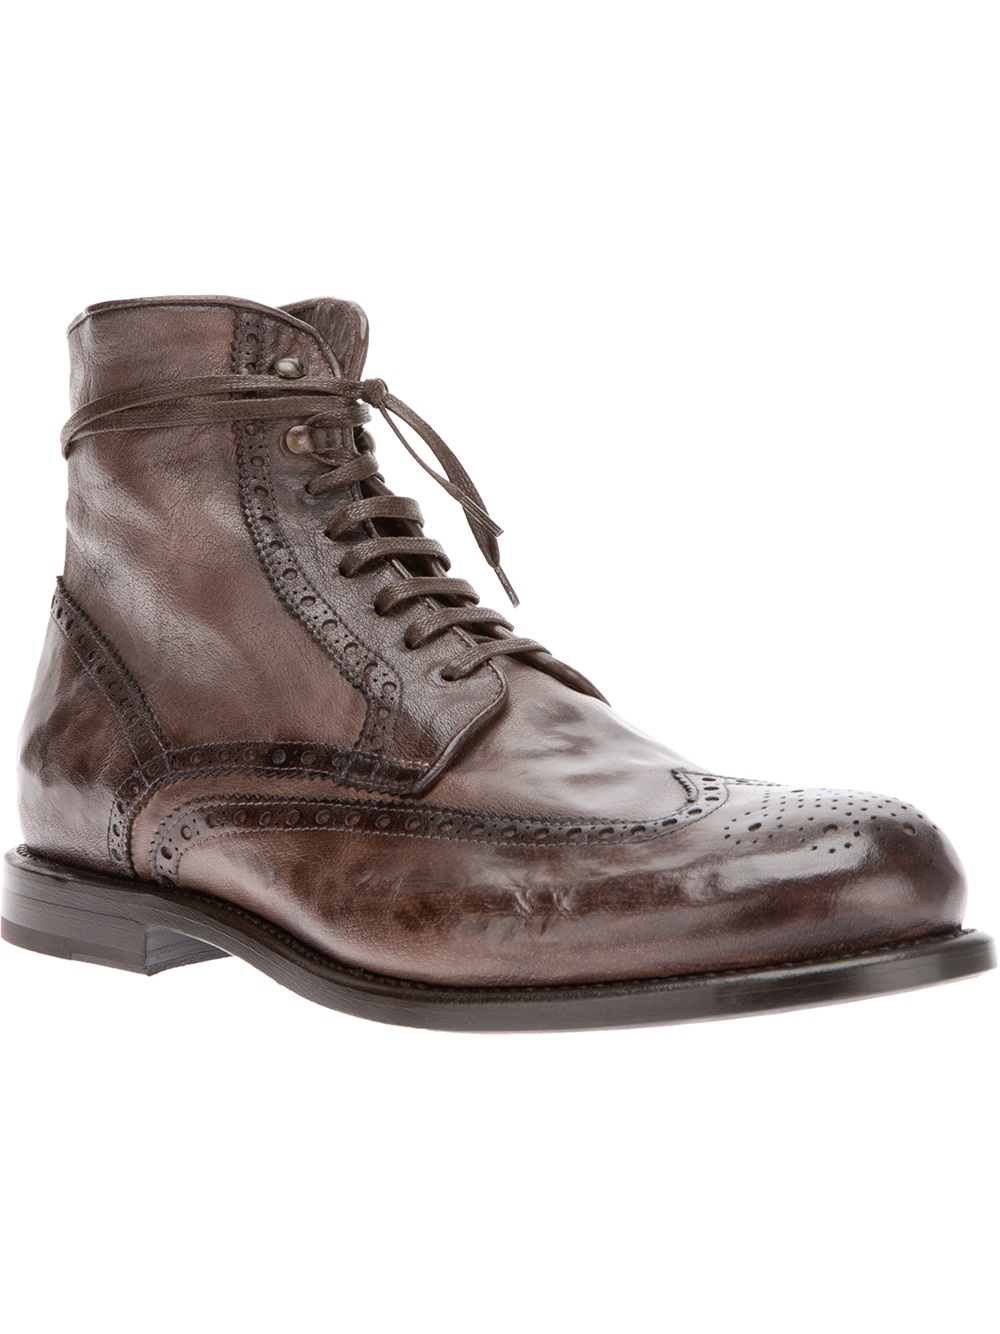 raparo brogue detail ankle boot in brown for lyst